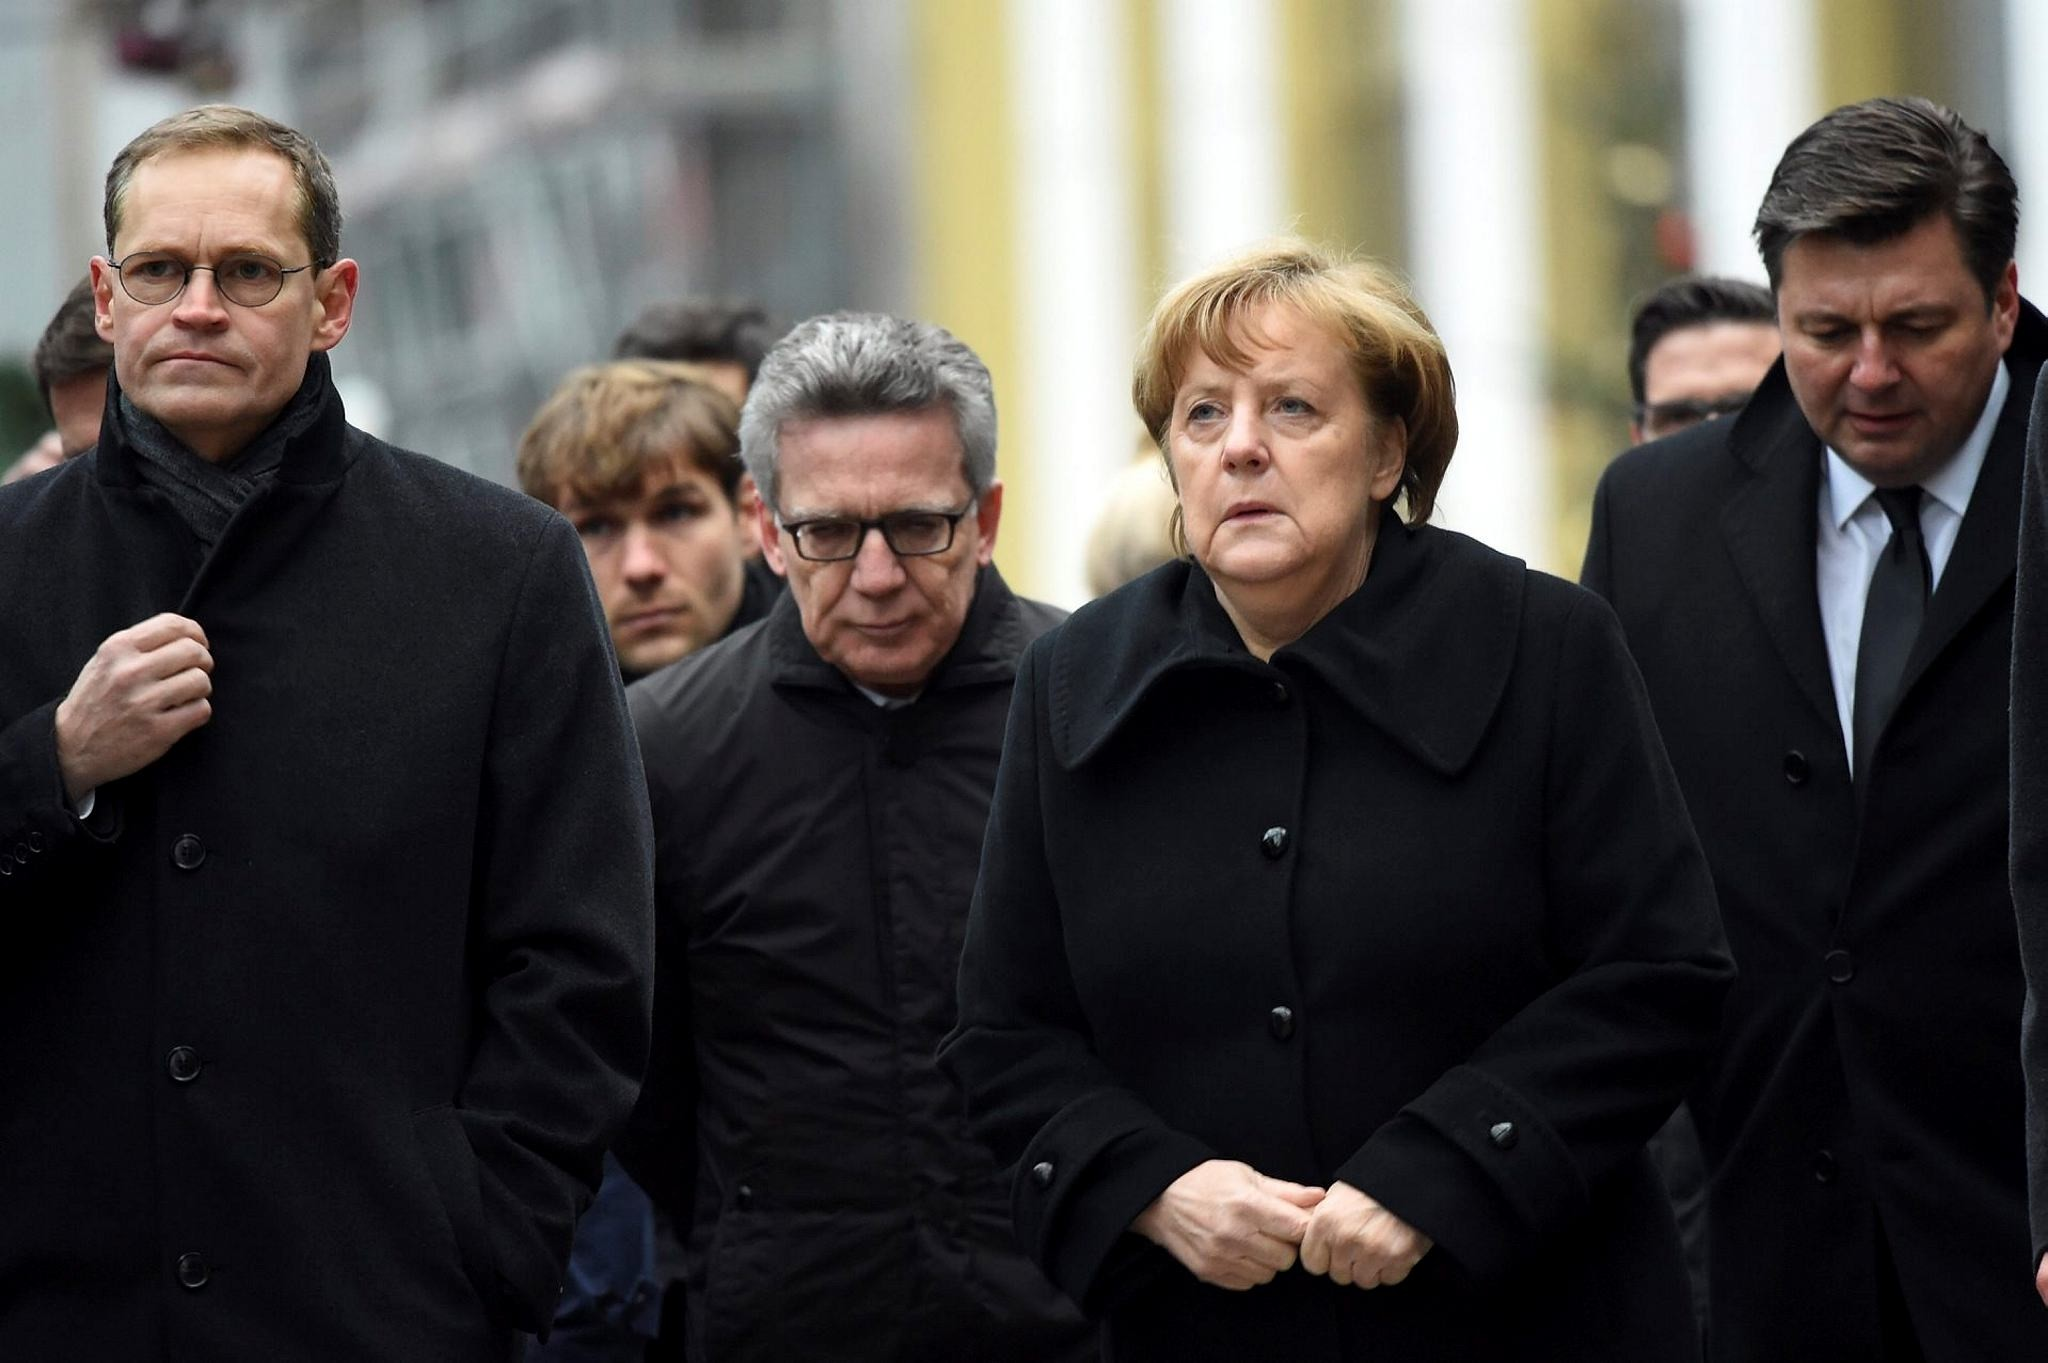 Berlin Mayor Michael Mueller (L), German Interior Minister Thomas de Maiziere (C) and German Chancellor Angela Merkel (R) visit the scene of an attack on a Christmas market in Berlin, Germany.